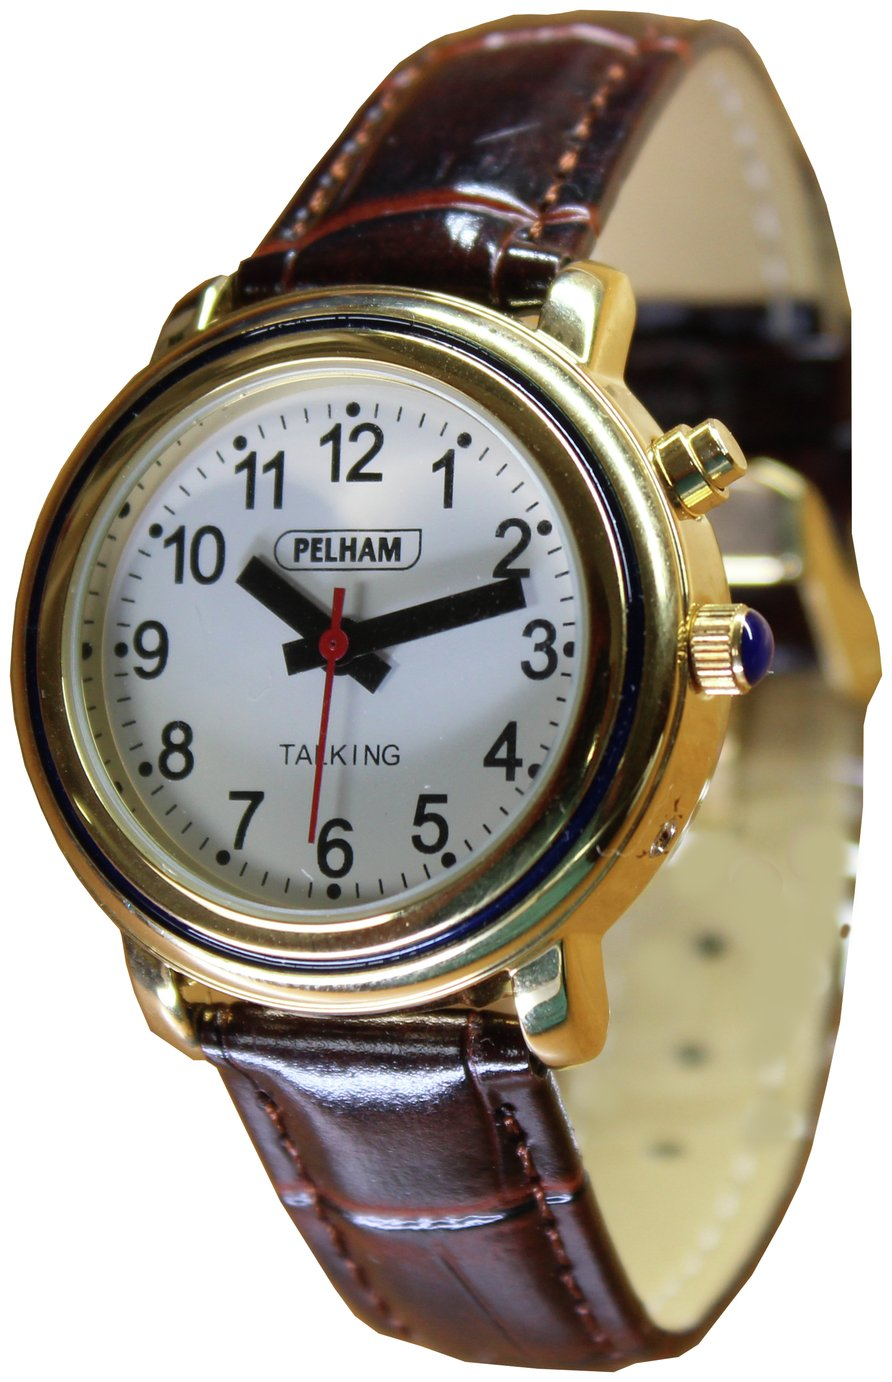 Pelham Small Analogue Talking Watch